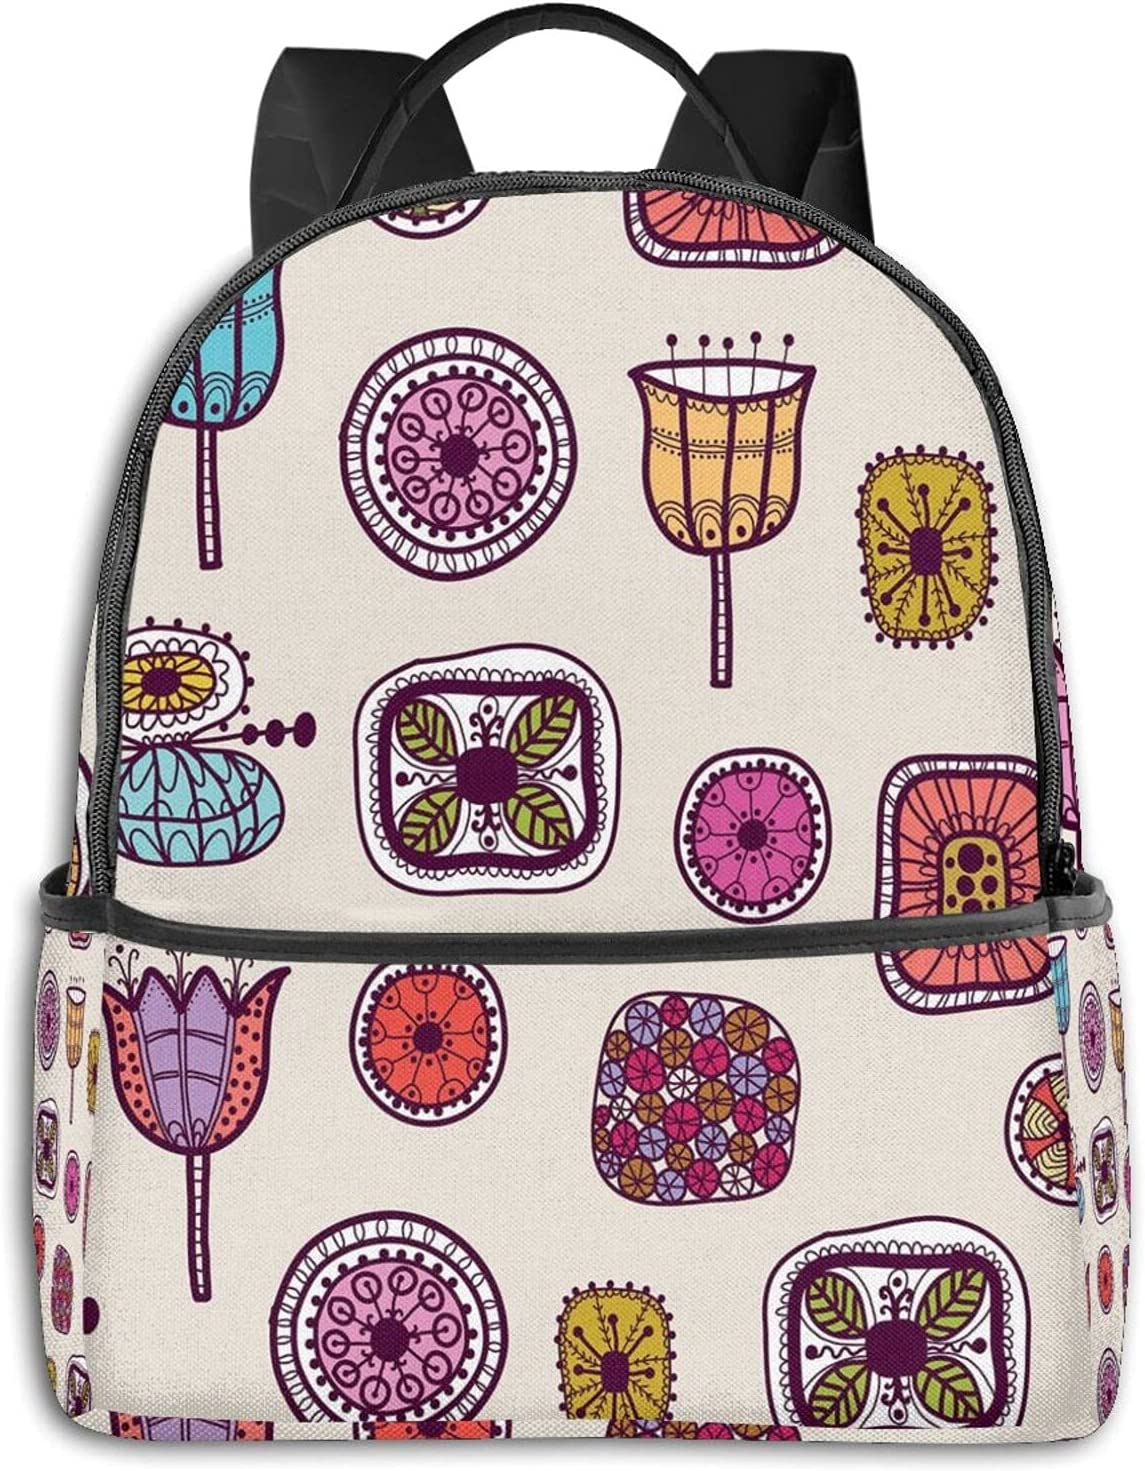 Abstract Shapes With Retro Inspired Colors Flowers Squares Circles Hand Drawn Art Mochilas Escuela Bolsa, Ciclismo